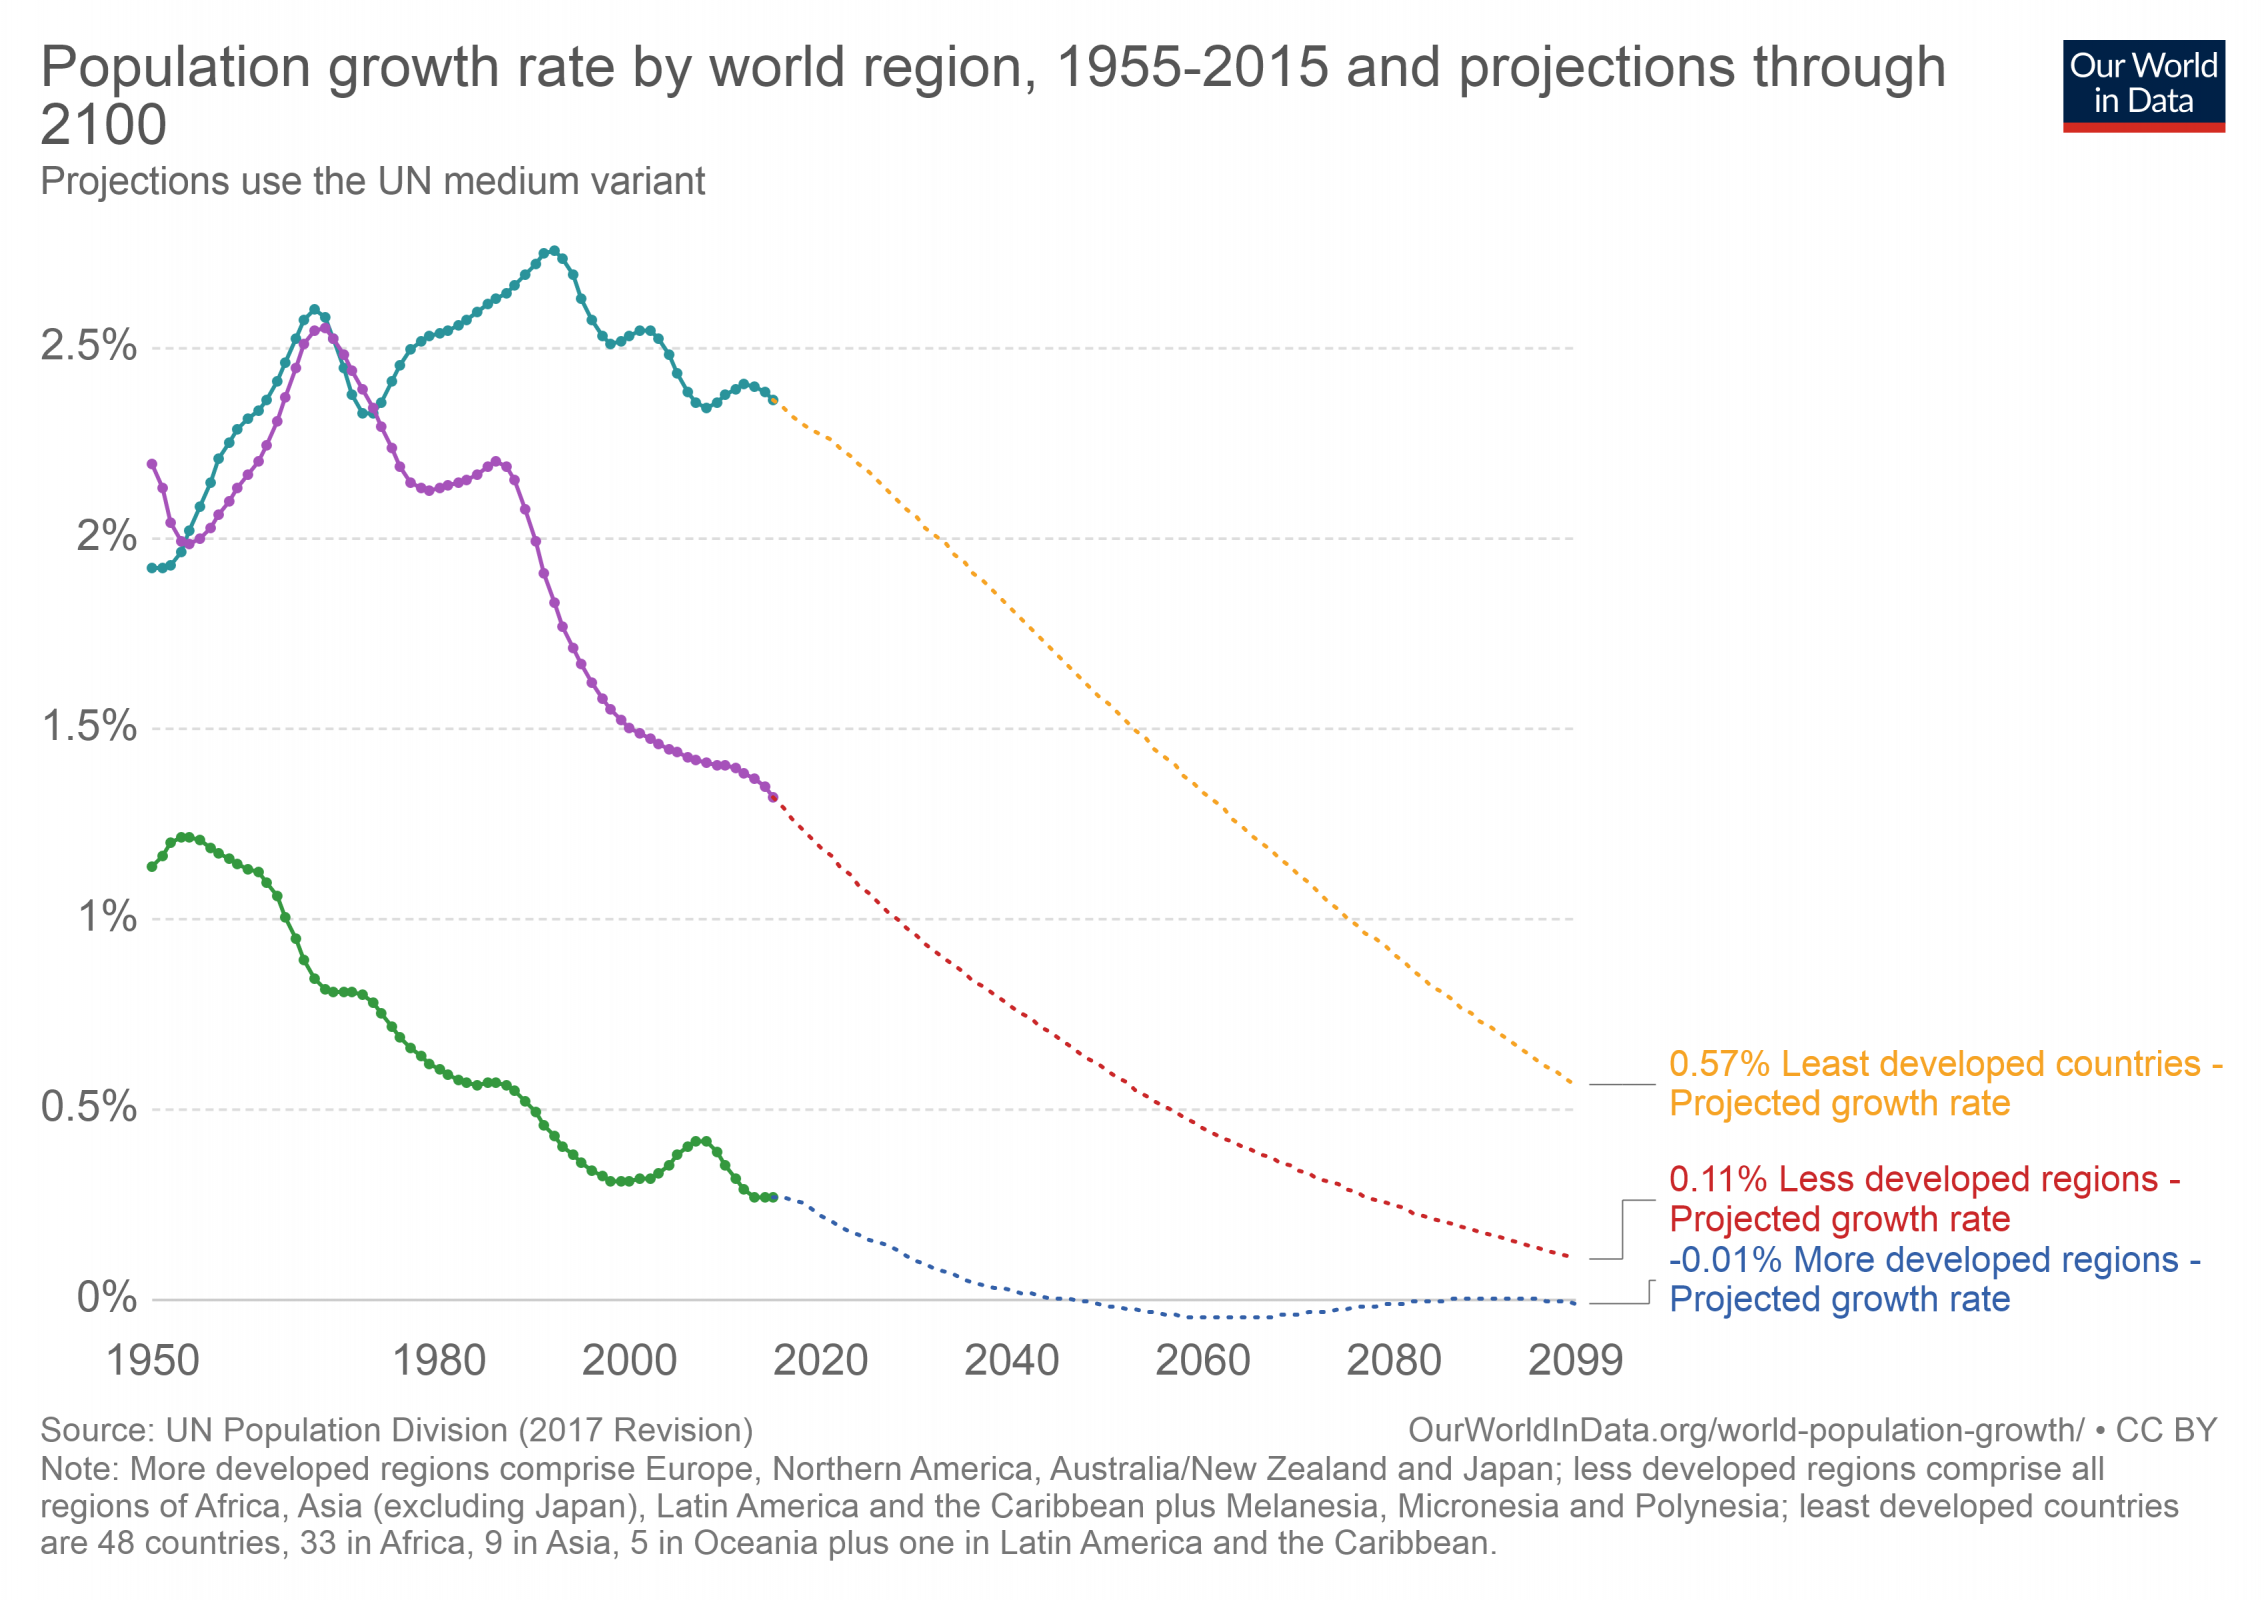 population-growth-rate-by-world-region-1955-2015-and-projections-through-2100.png